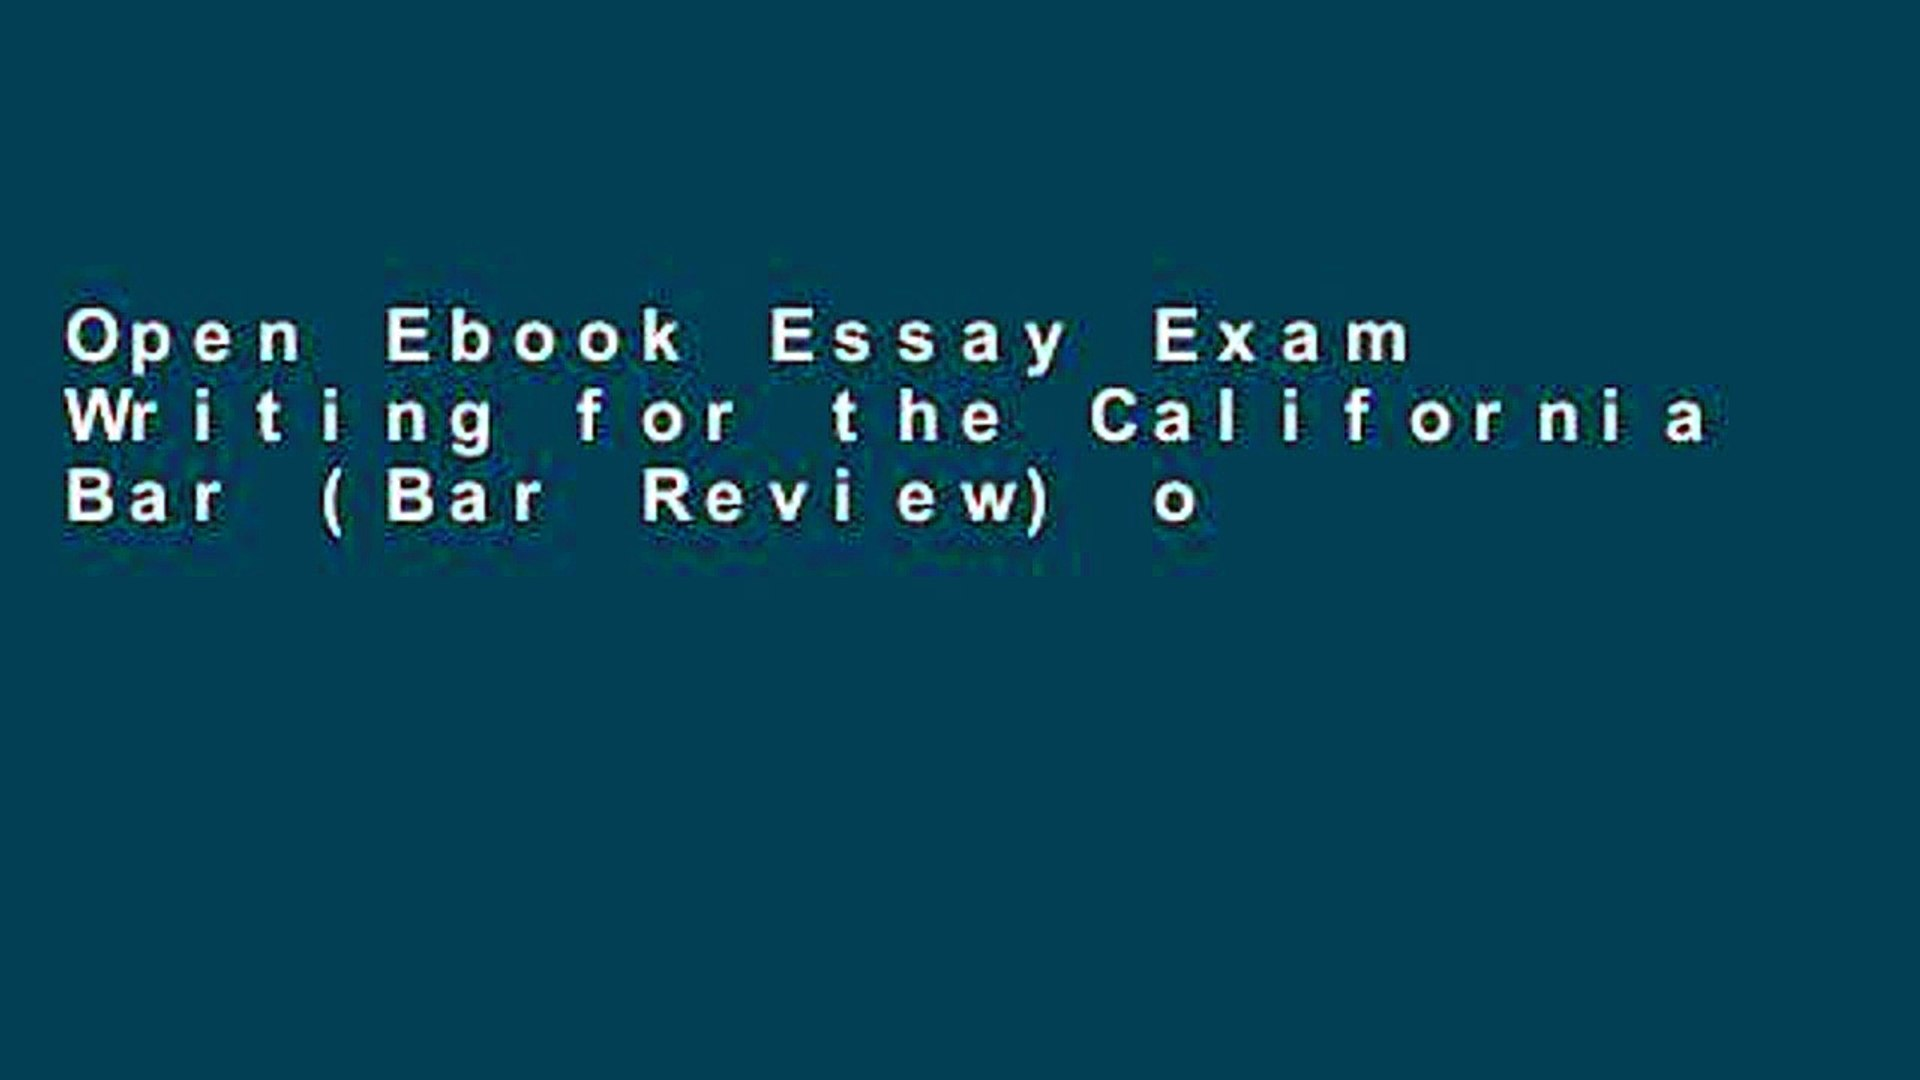 Open Ebook Essay Exam Writing for the California Bar (Bar Review) online